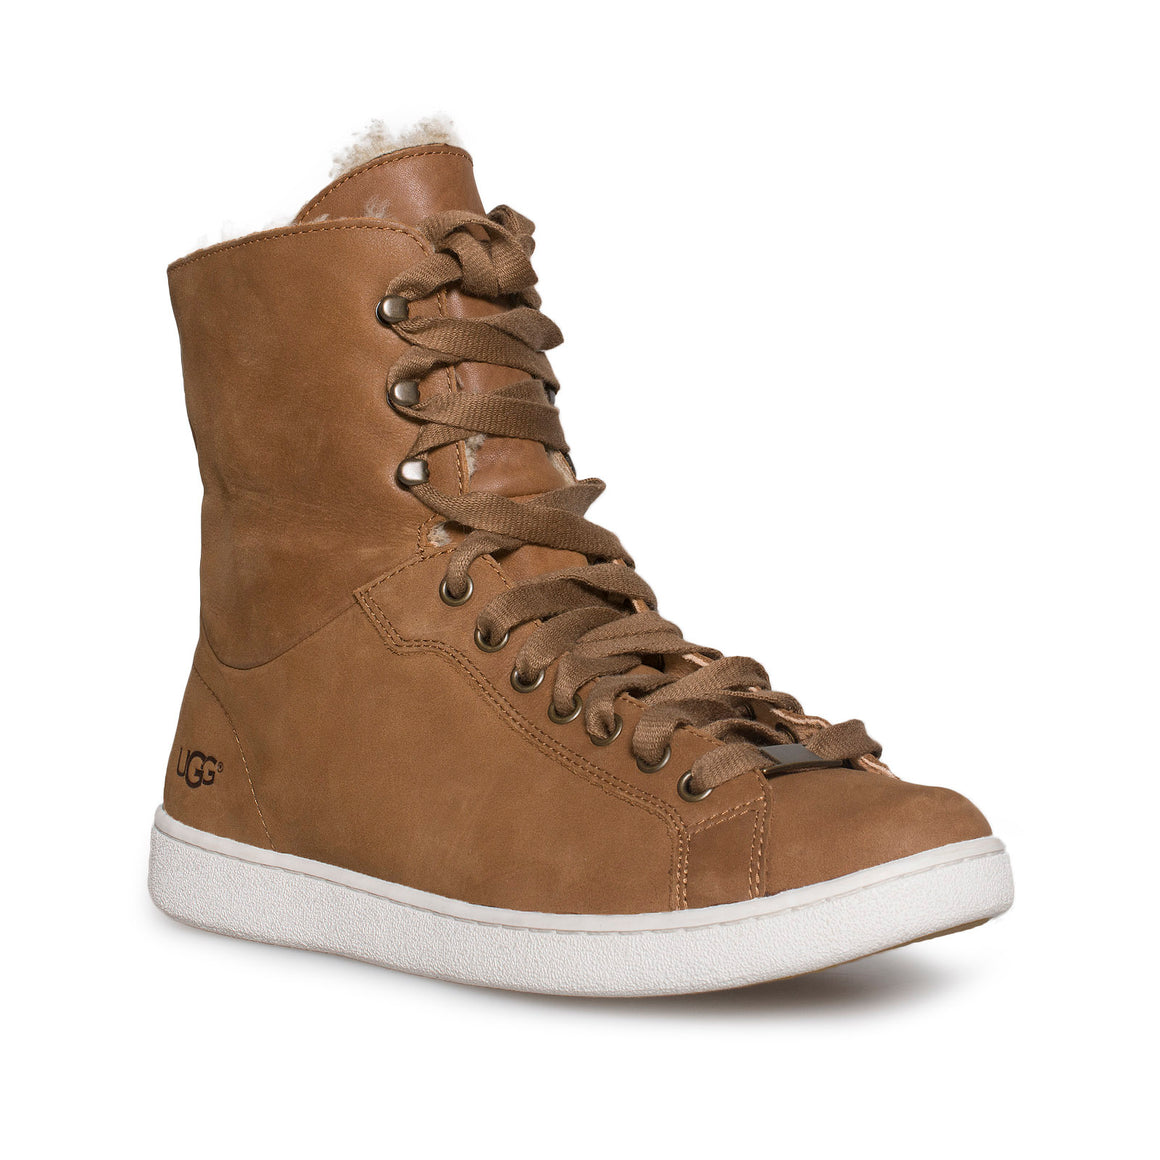 UGG Starlyn Chestnut Sneakers